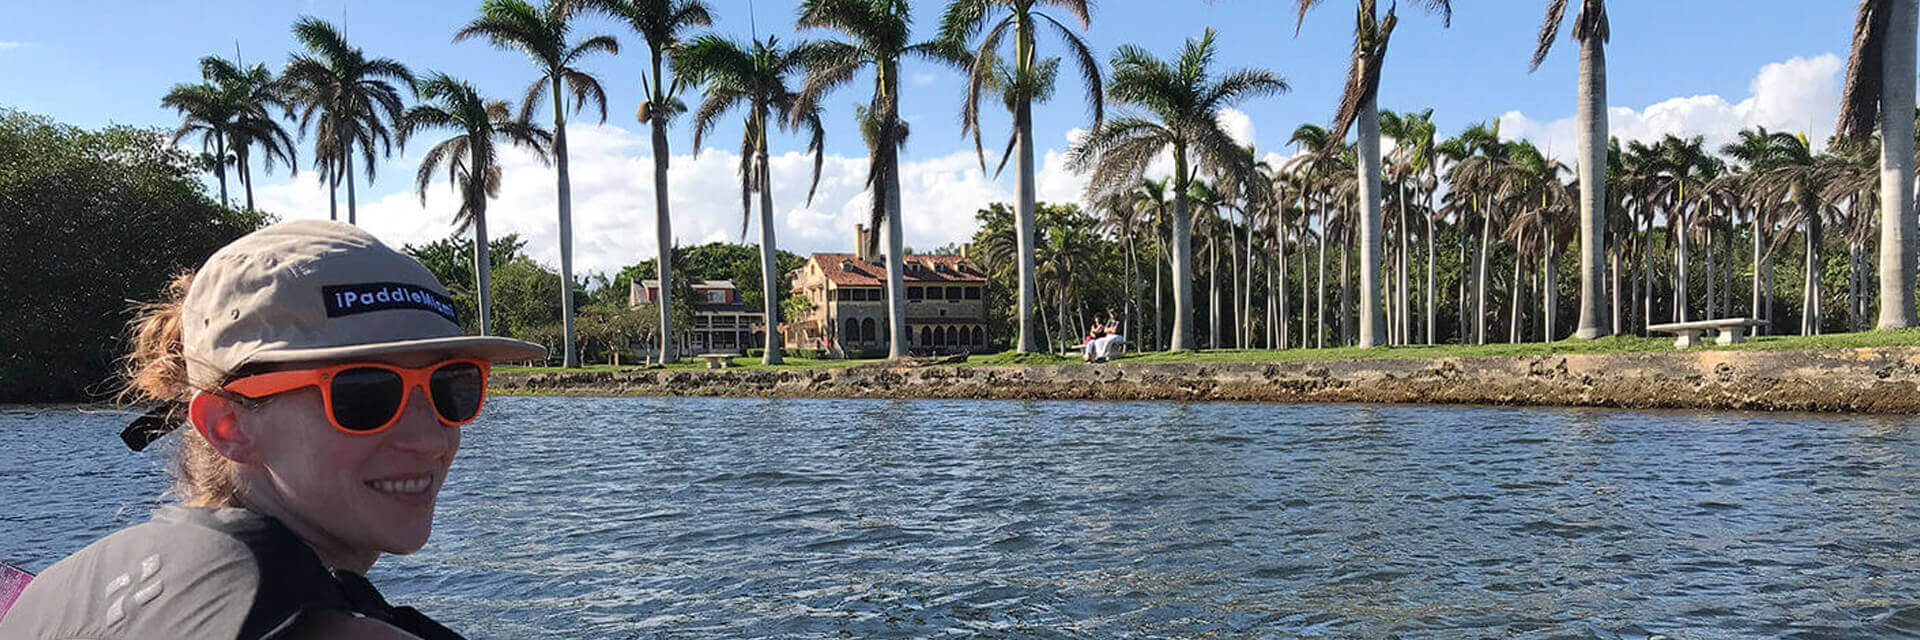 Deering Point Miami Kayak & Paddle Board Rentals